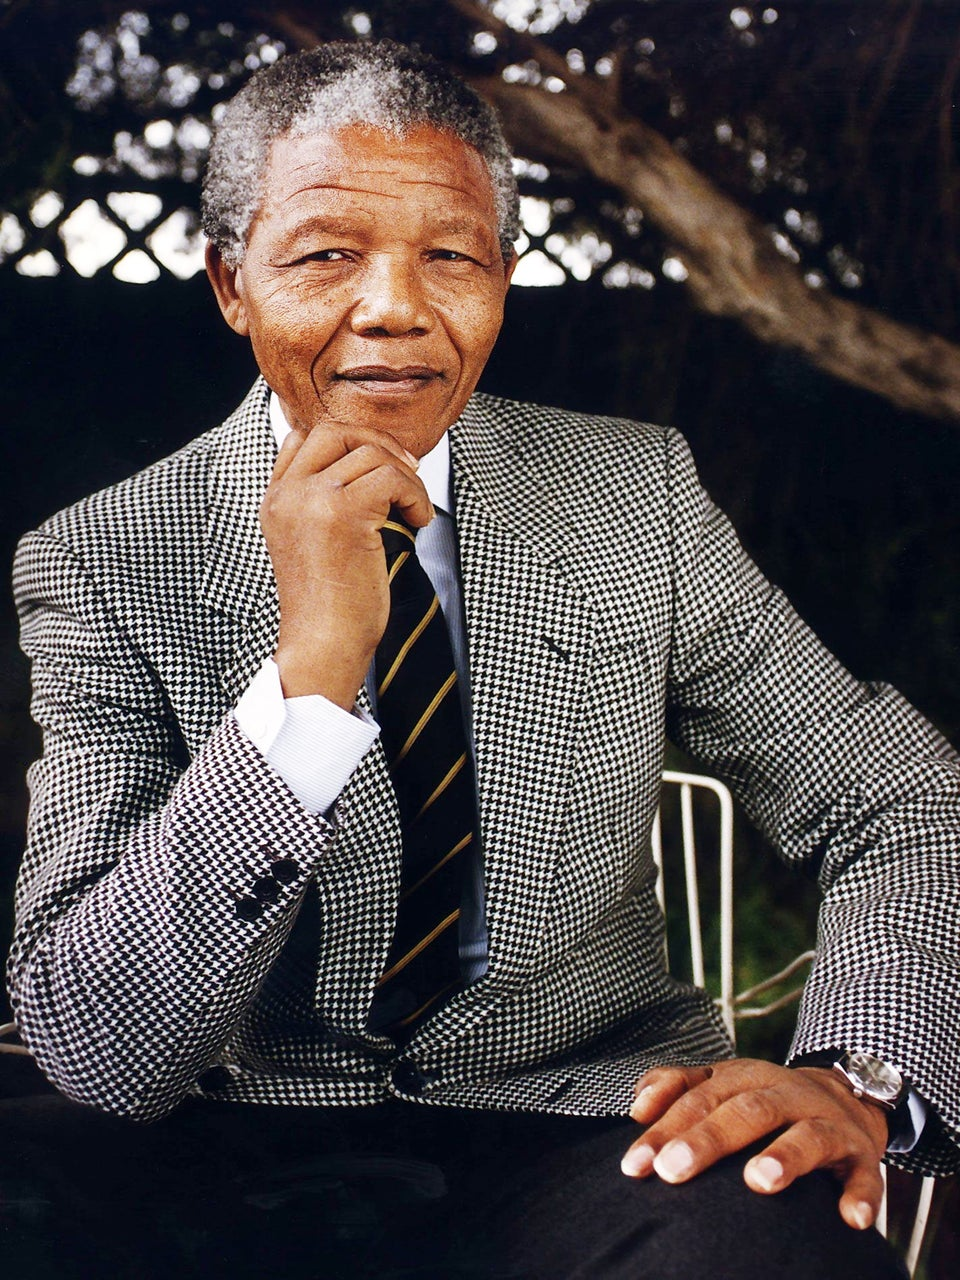 10 Nelson Mandela Quotes That Hit Home In Today's Political Climate